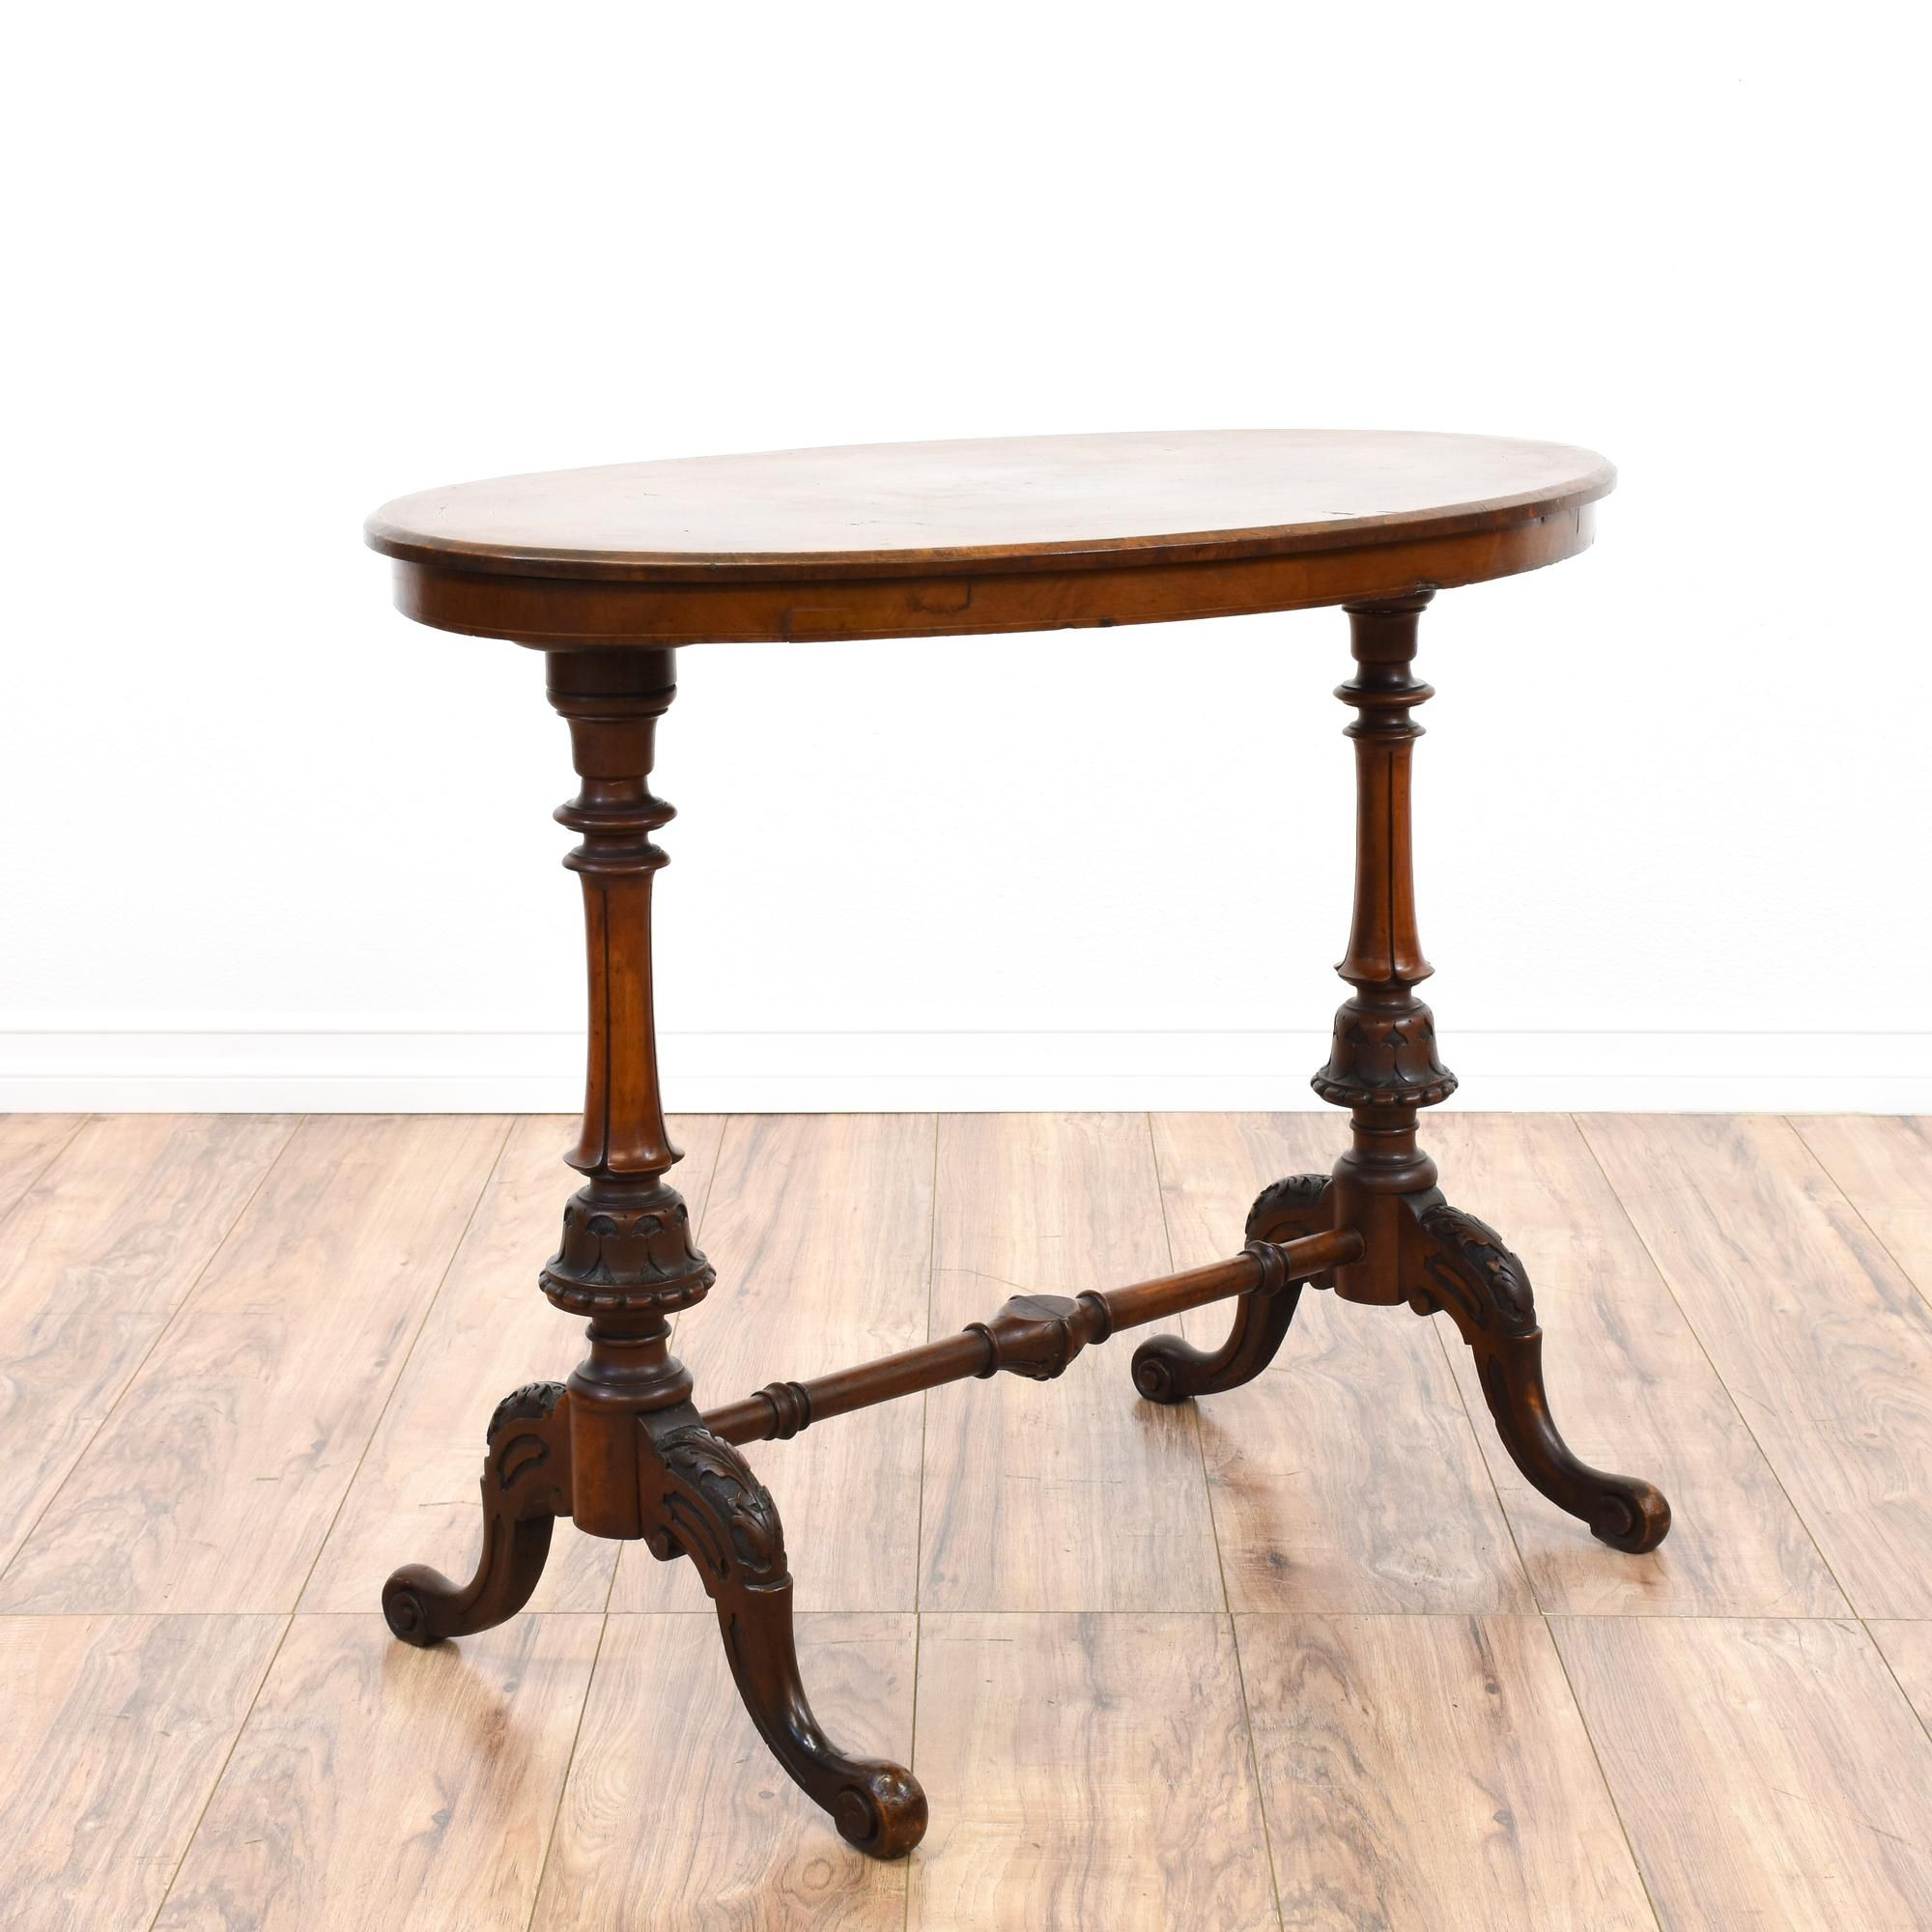 This victorian console table is featured in a solid wood with a this victorian console table is featured in a solid wood with a glossy dark cherry finish geotapseo Images